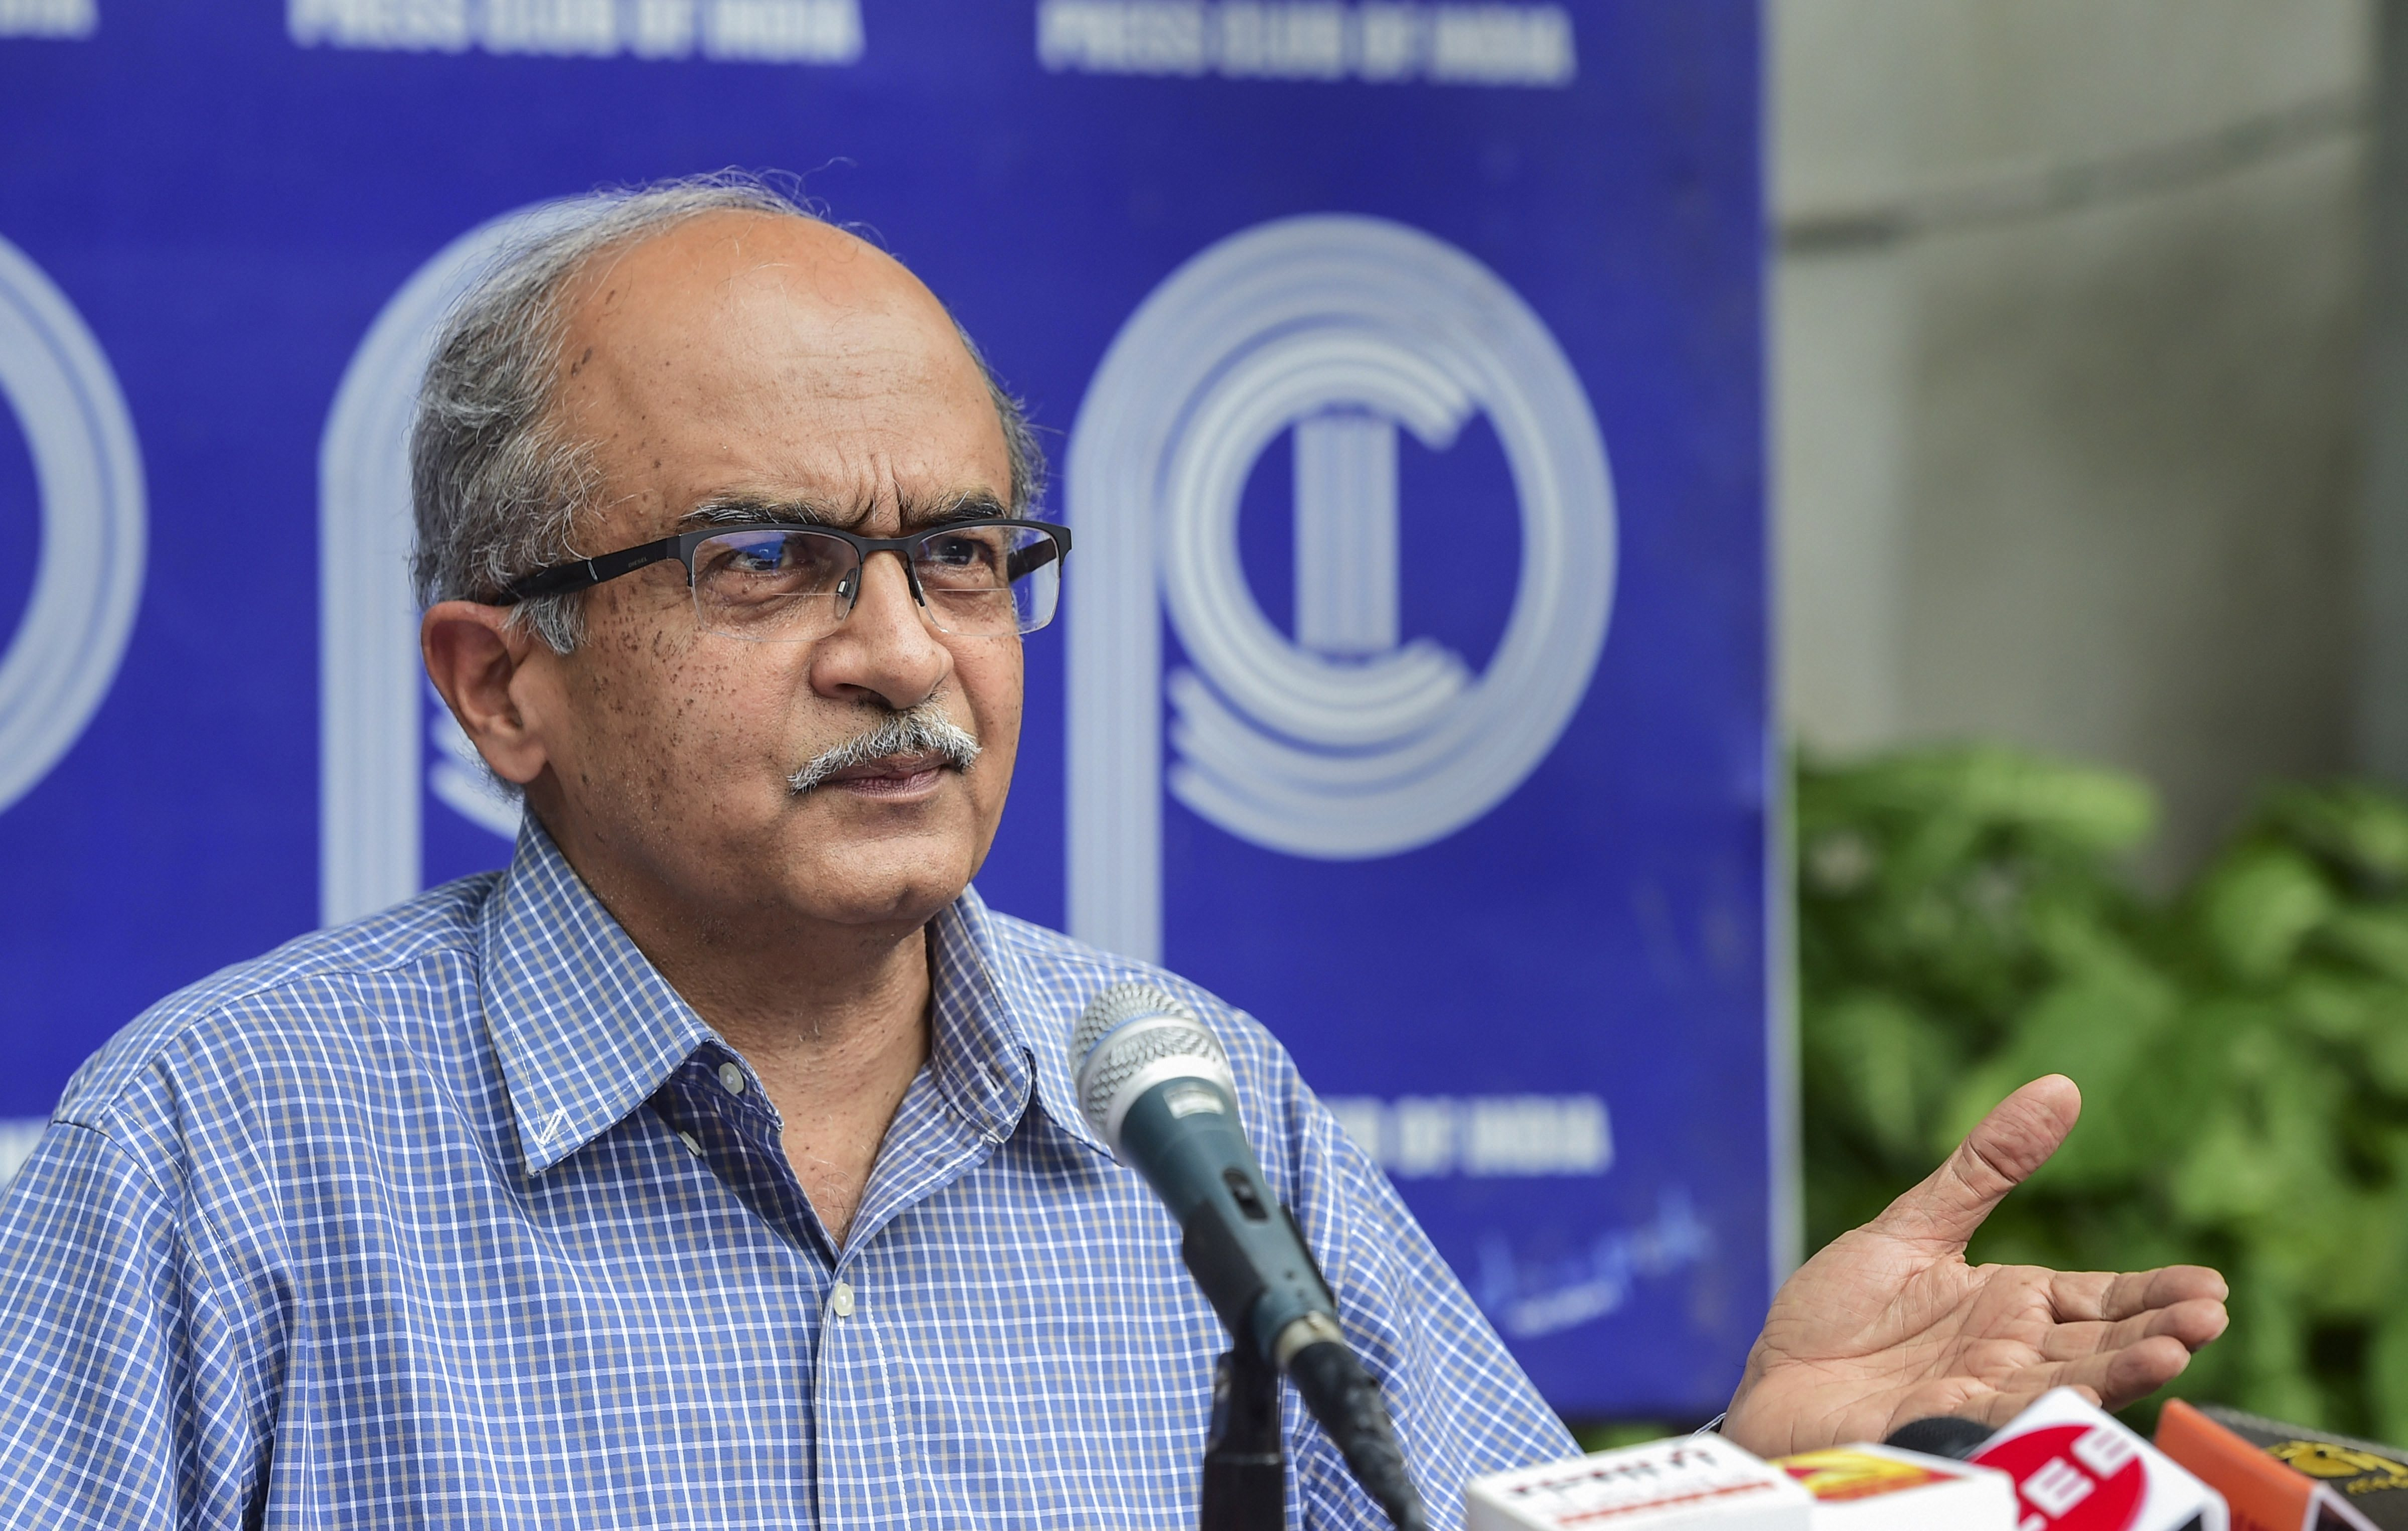 New Delhi: Activist-lawyer Prashant Bhushan addreses a press conference, after Supreme Court imposed a token fine of one rupee as punishment in a contempt case against him, in New Delhi, Monday, Aug. 31, 2020. (PTI Photo/Kamal Kishore)(PTI31-08-2020_000105B)